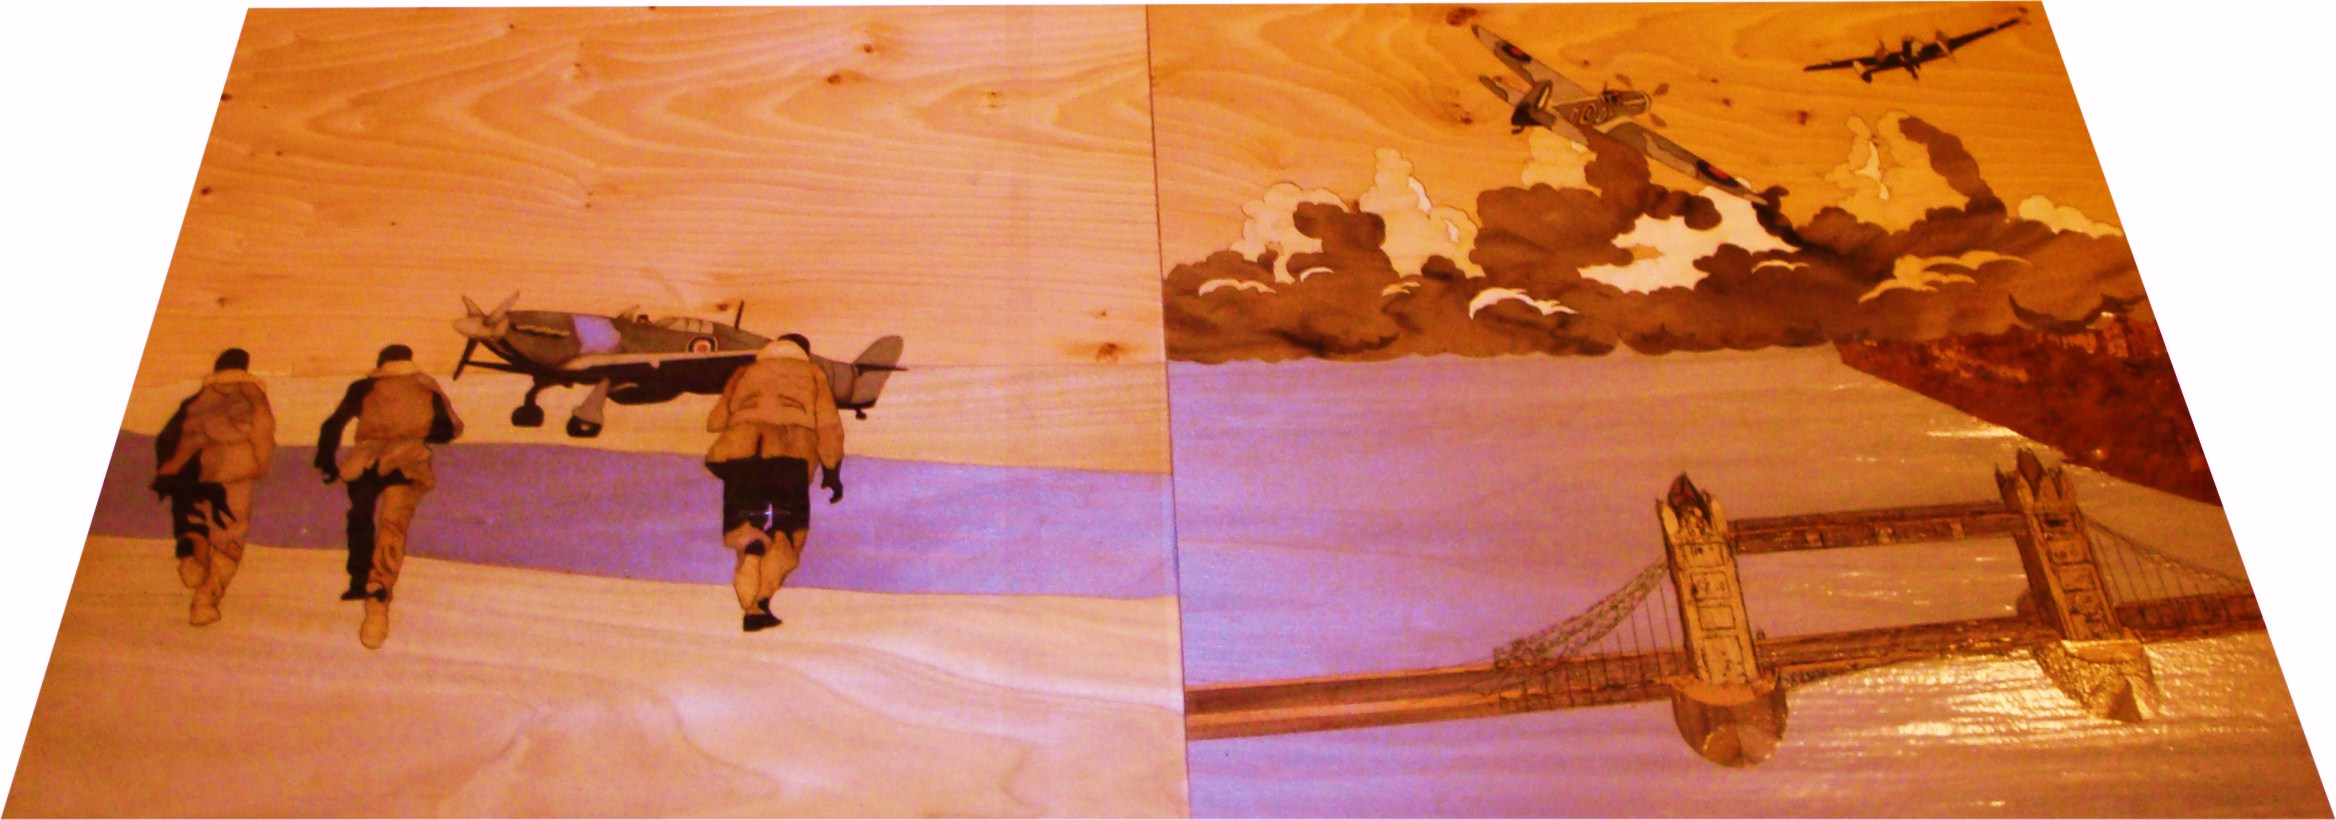 panels designed with a Battle of Britain theme June 2010 (unfinished panels)